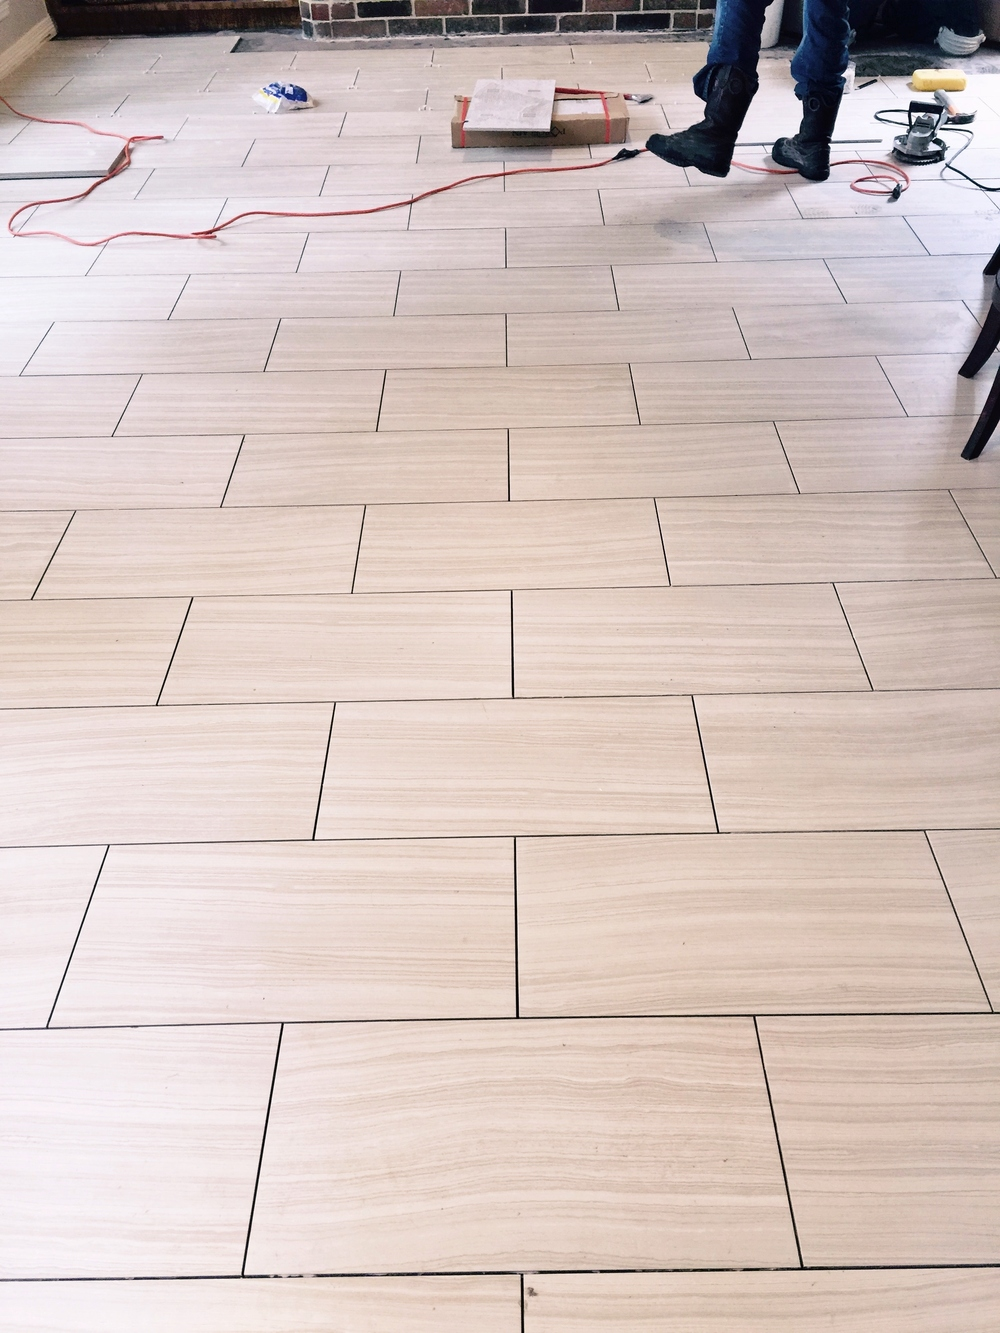 12 X 24 Tile Floor Being Laid Across The Narrow Width Of The Room To Make